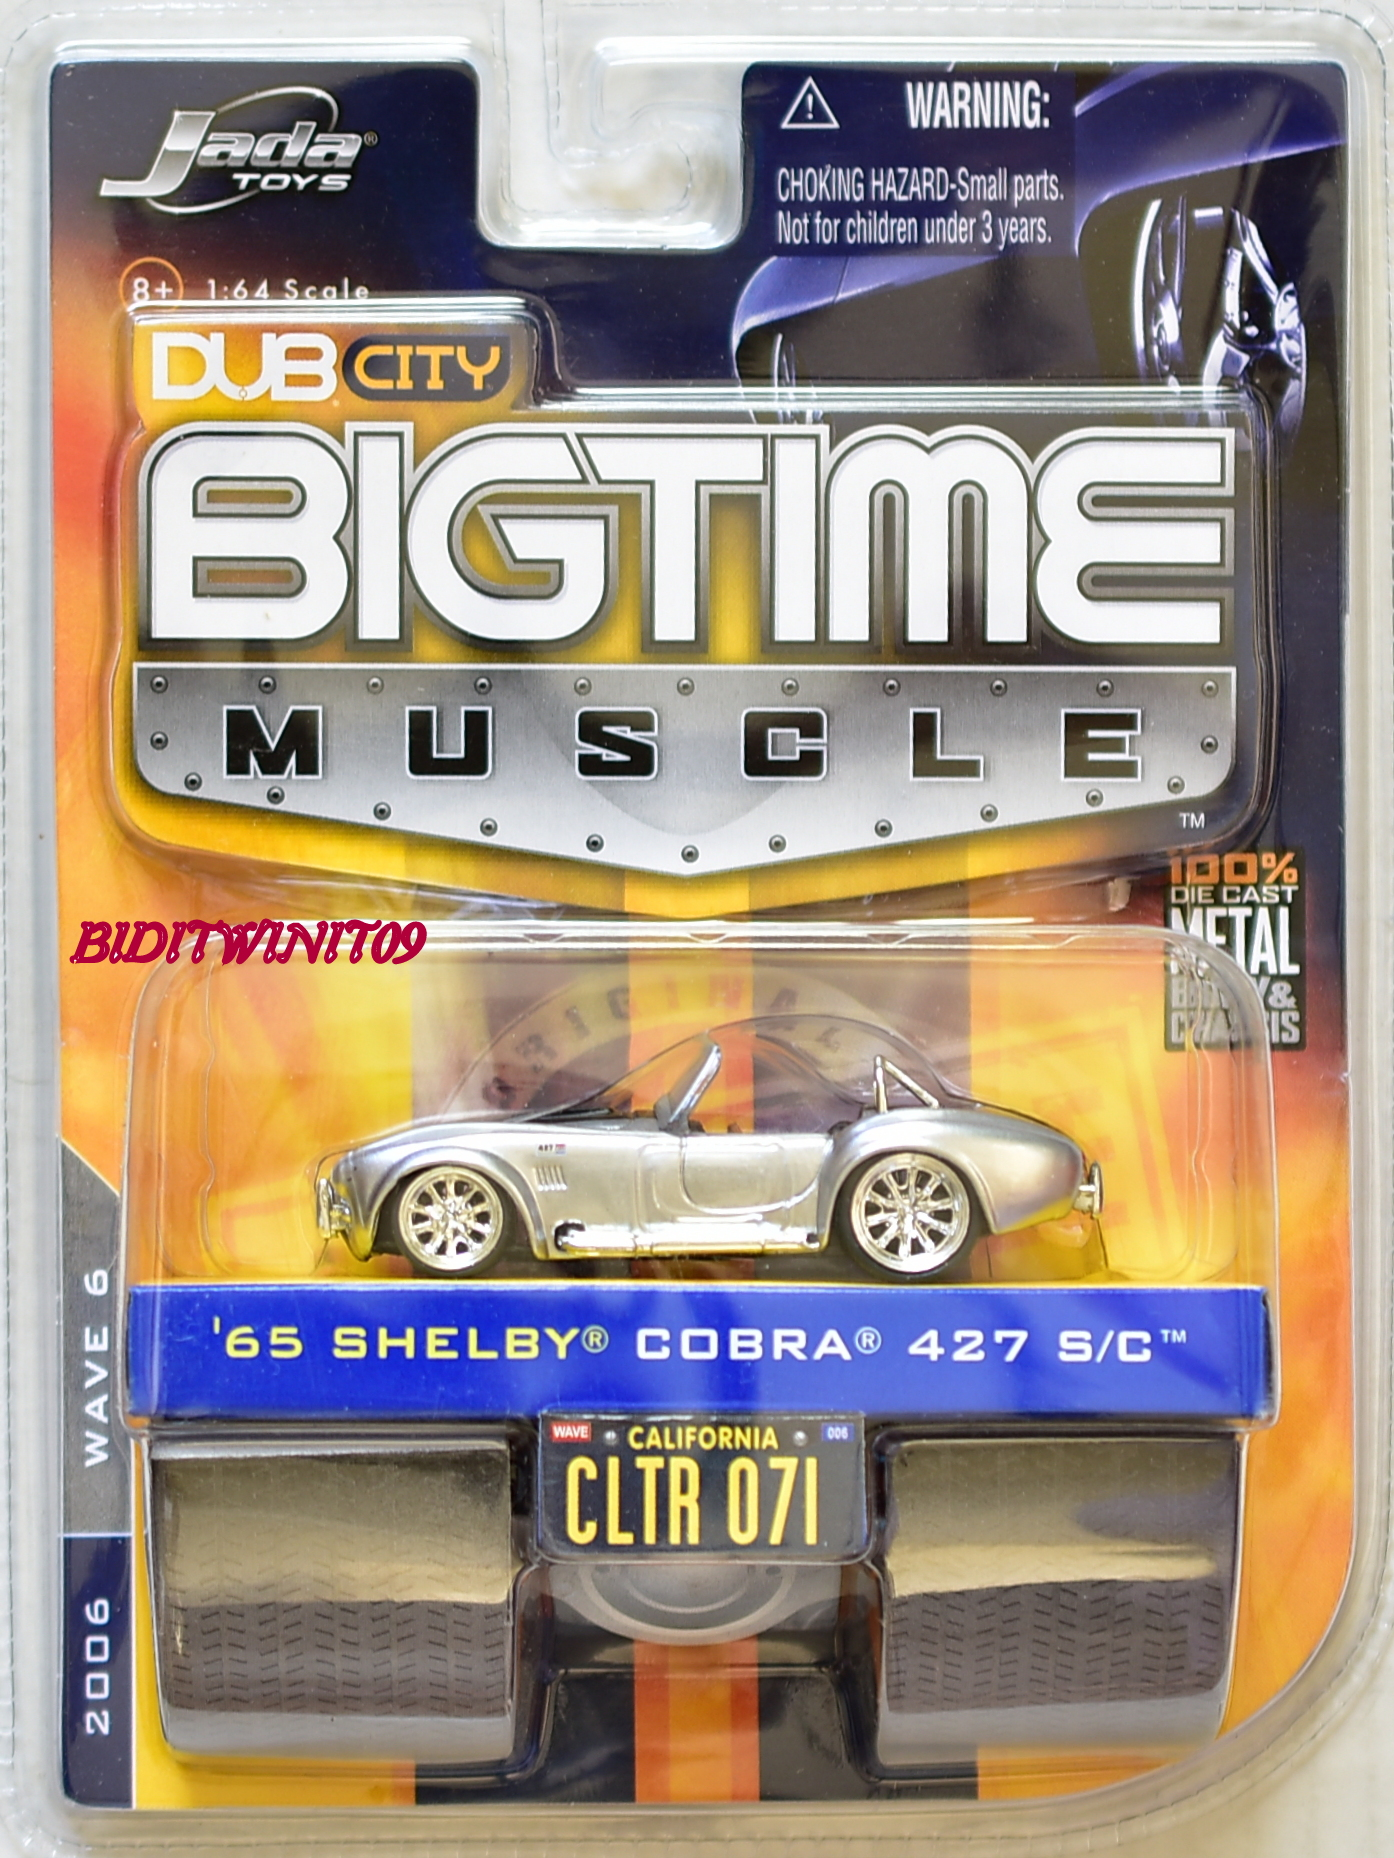 JADA TOYS DUB CITY BIGTIME MUSCLE '65 SHELBY COBRA 427 S/C CLTR 071 SILVER E+